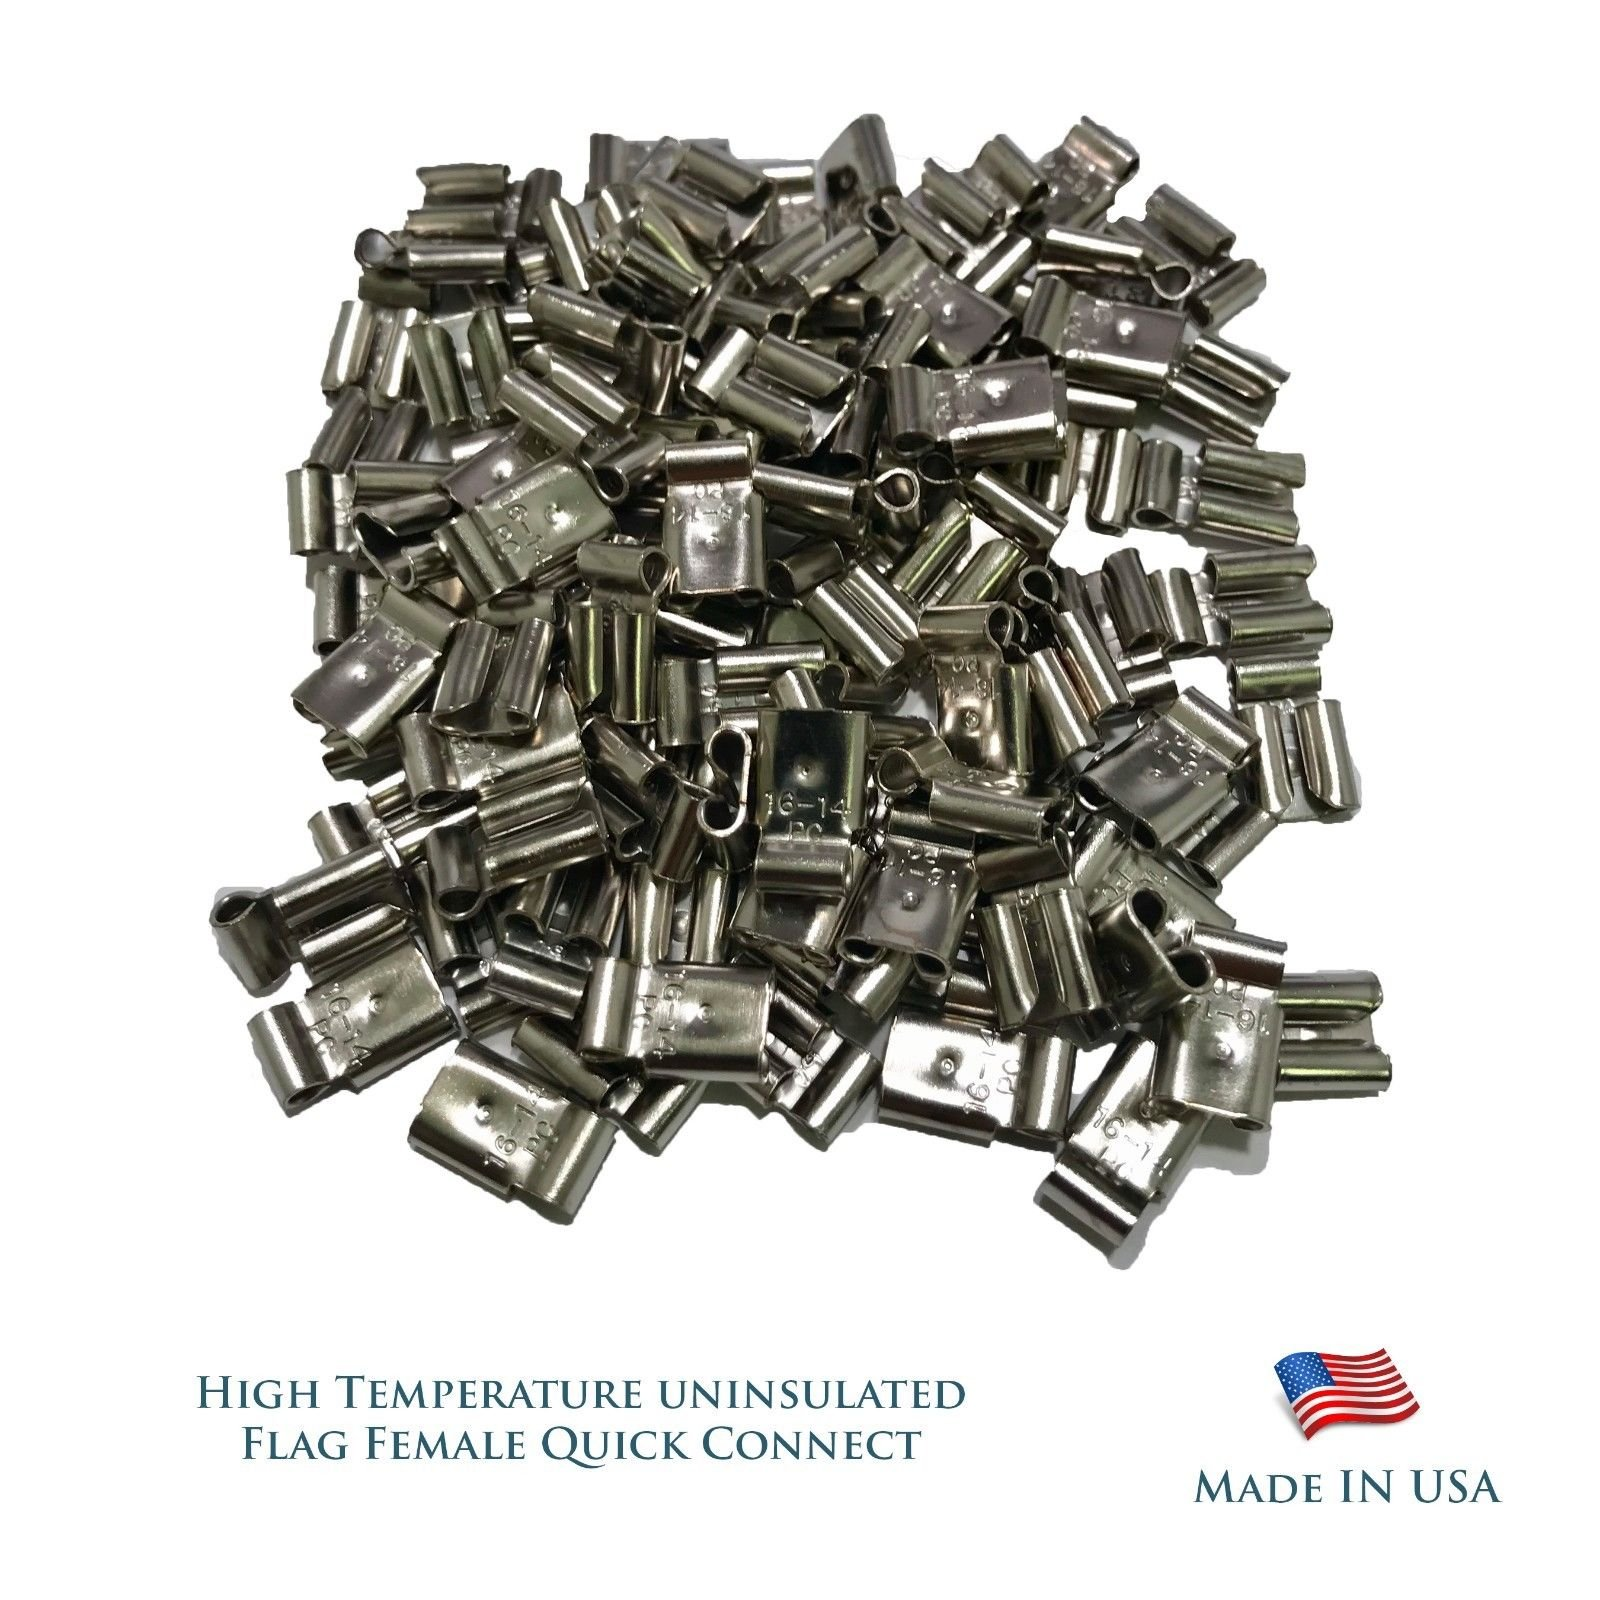 Sherco-Auto High Temperature 100 Pcs Flag Female Quick Connect Terminal 16-14 AWG Gauge .250 FQC - USA Made by Sherco-Auto